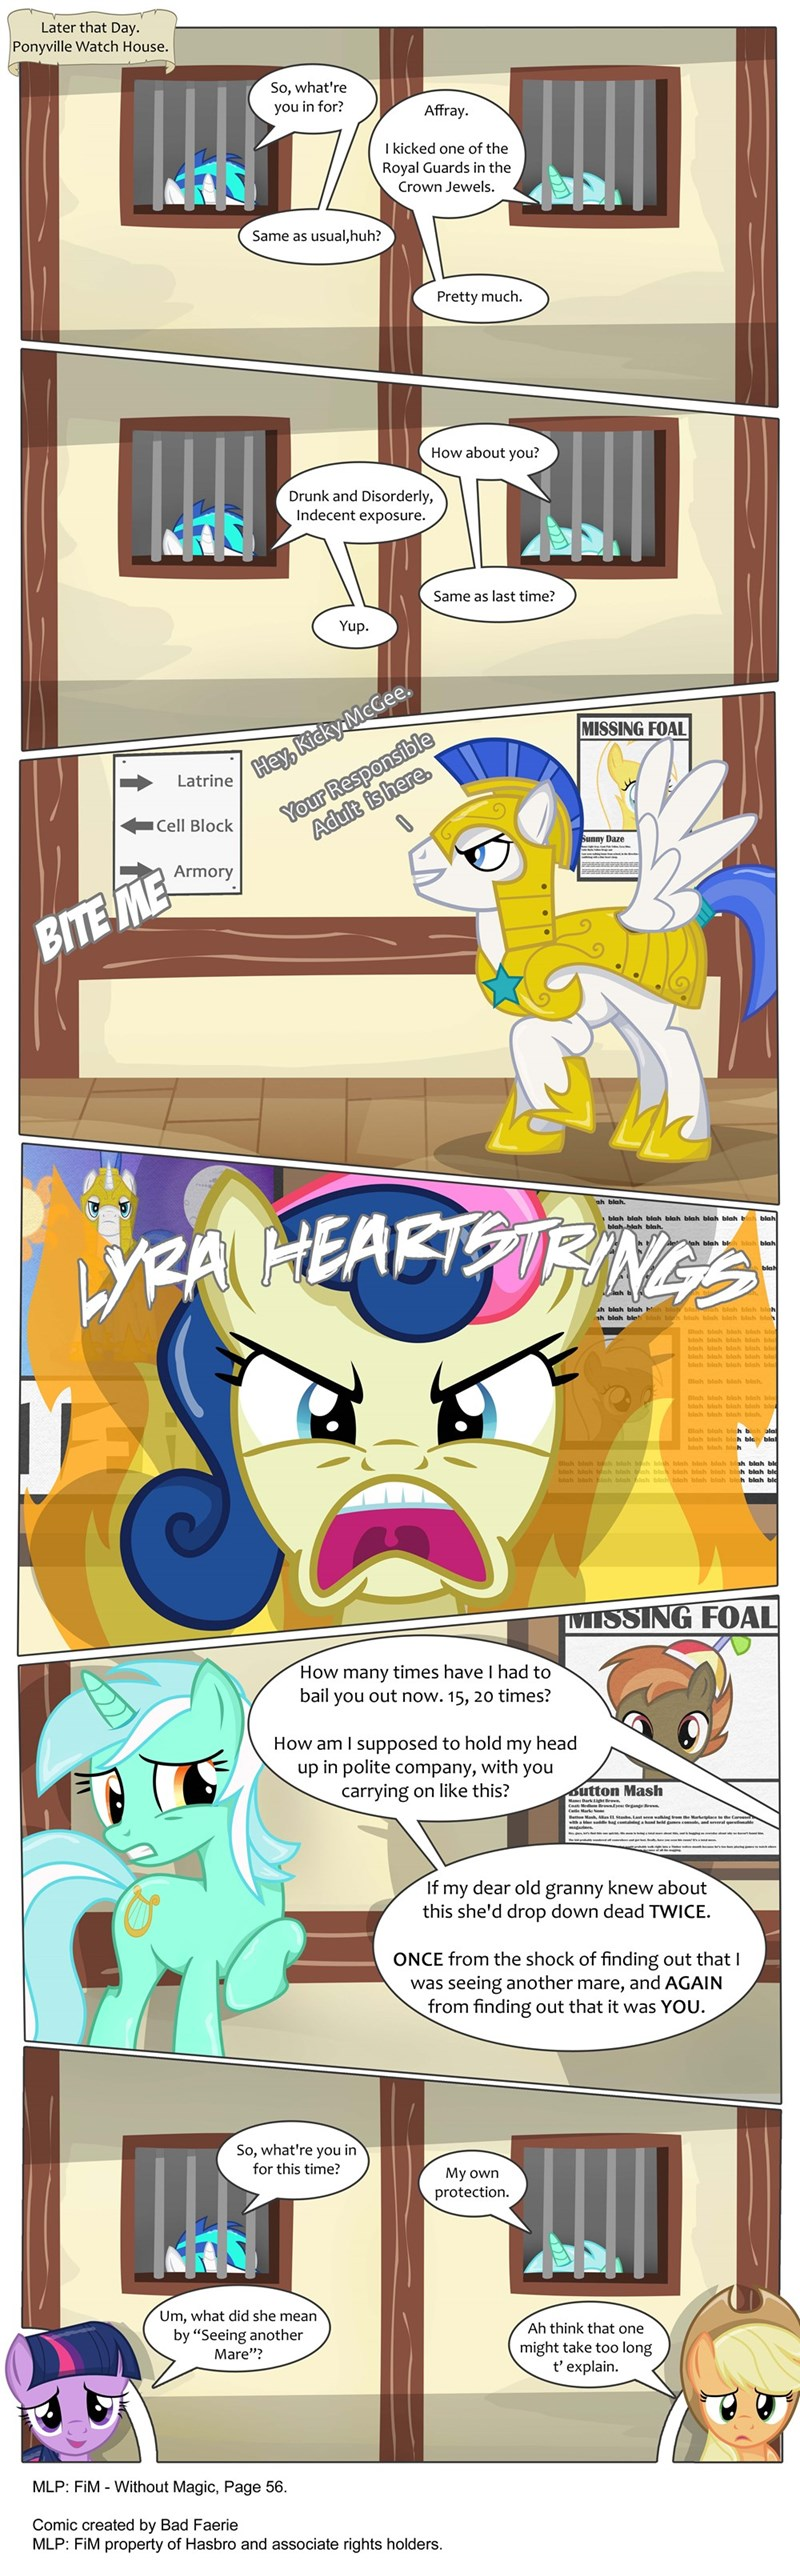 applejack,twilight sparkle,lyra heartstrings,vinyl scratch,dj PON-3,comic,bon bon